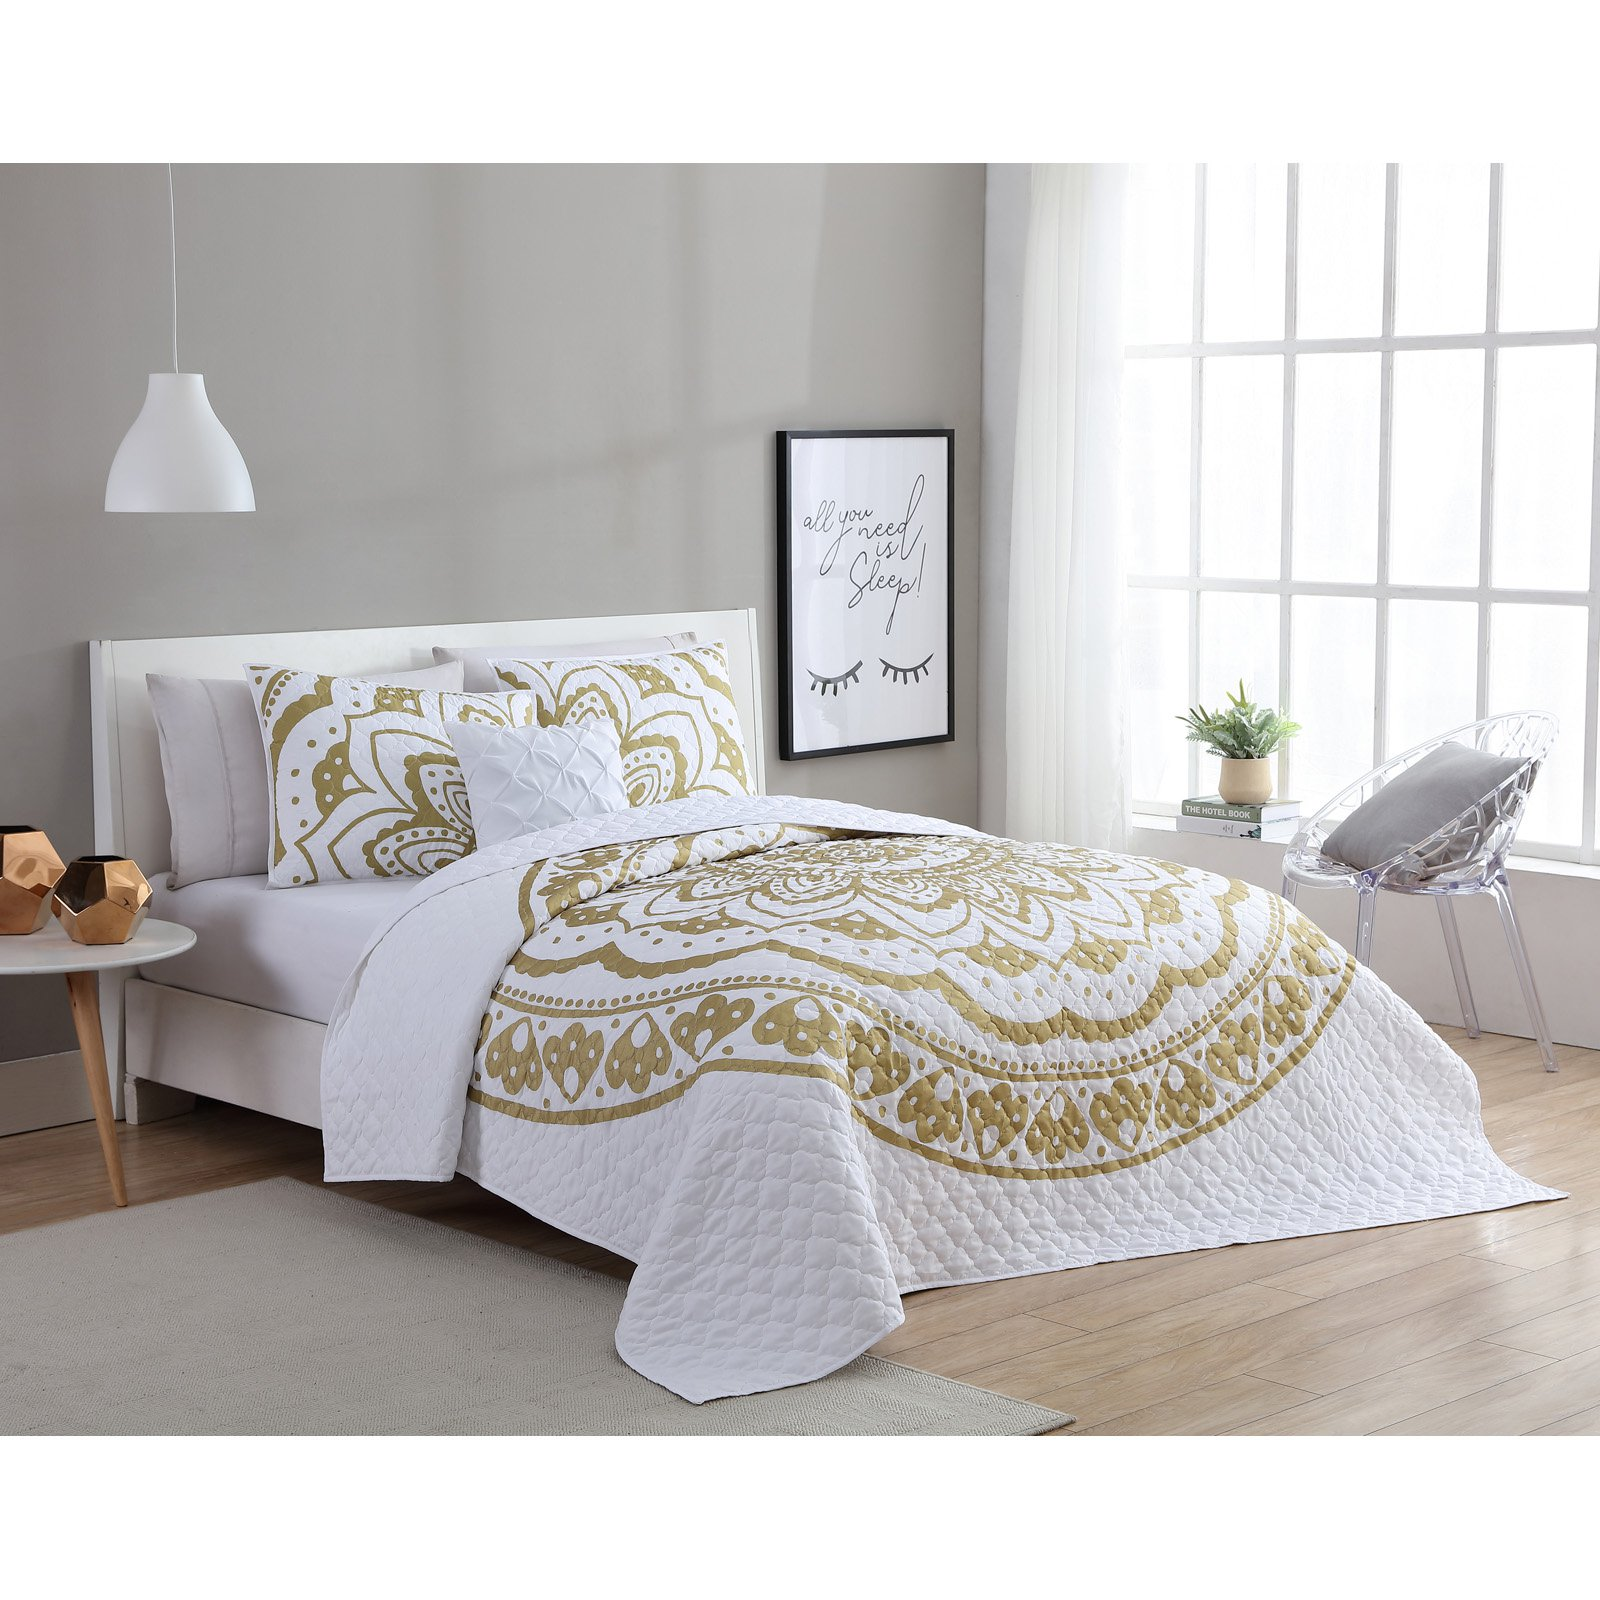 VCNY Home Karma Gold/White 3/4-Piece Quilt Bedding Set, Shams and Decorative Pillow Included